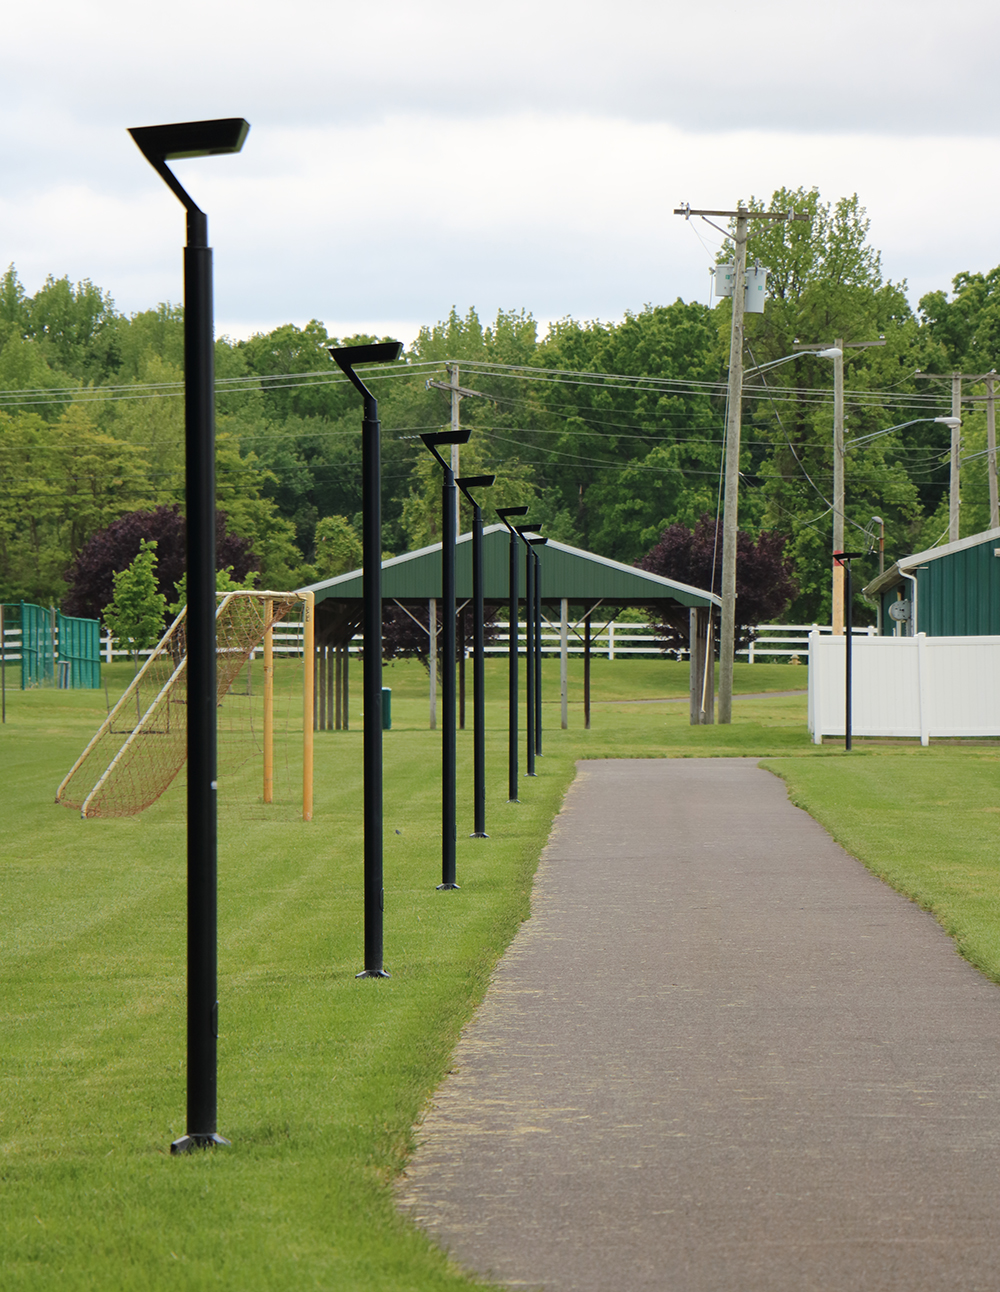 Pathway Lighting Luminaires - IPL Series - First Light Technologies